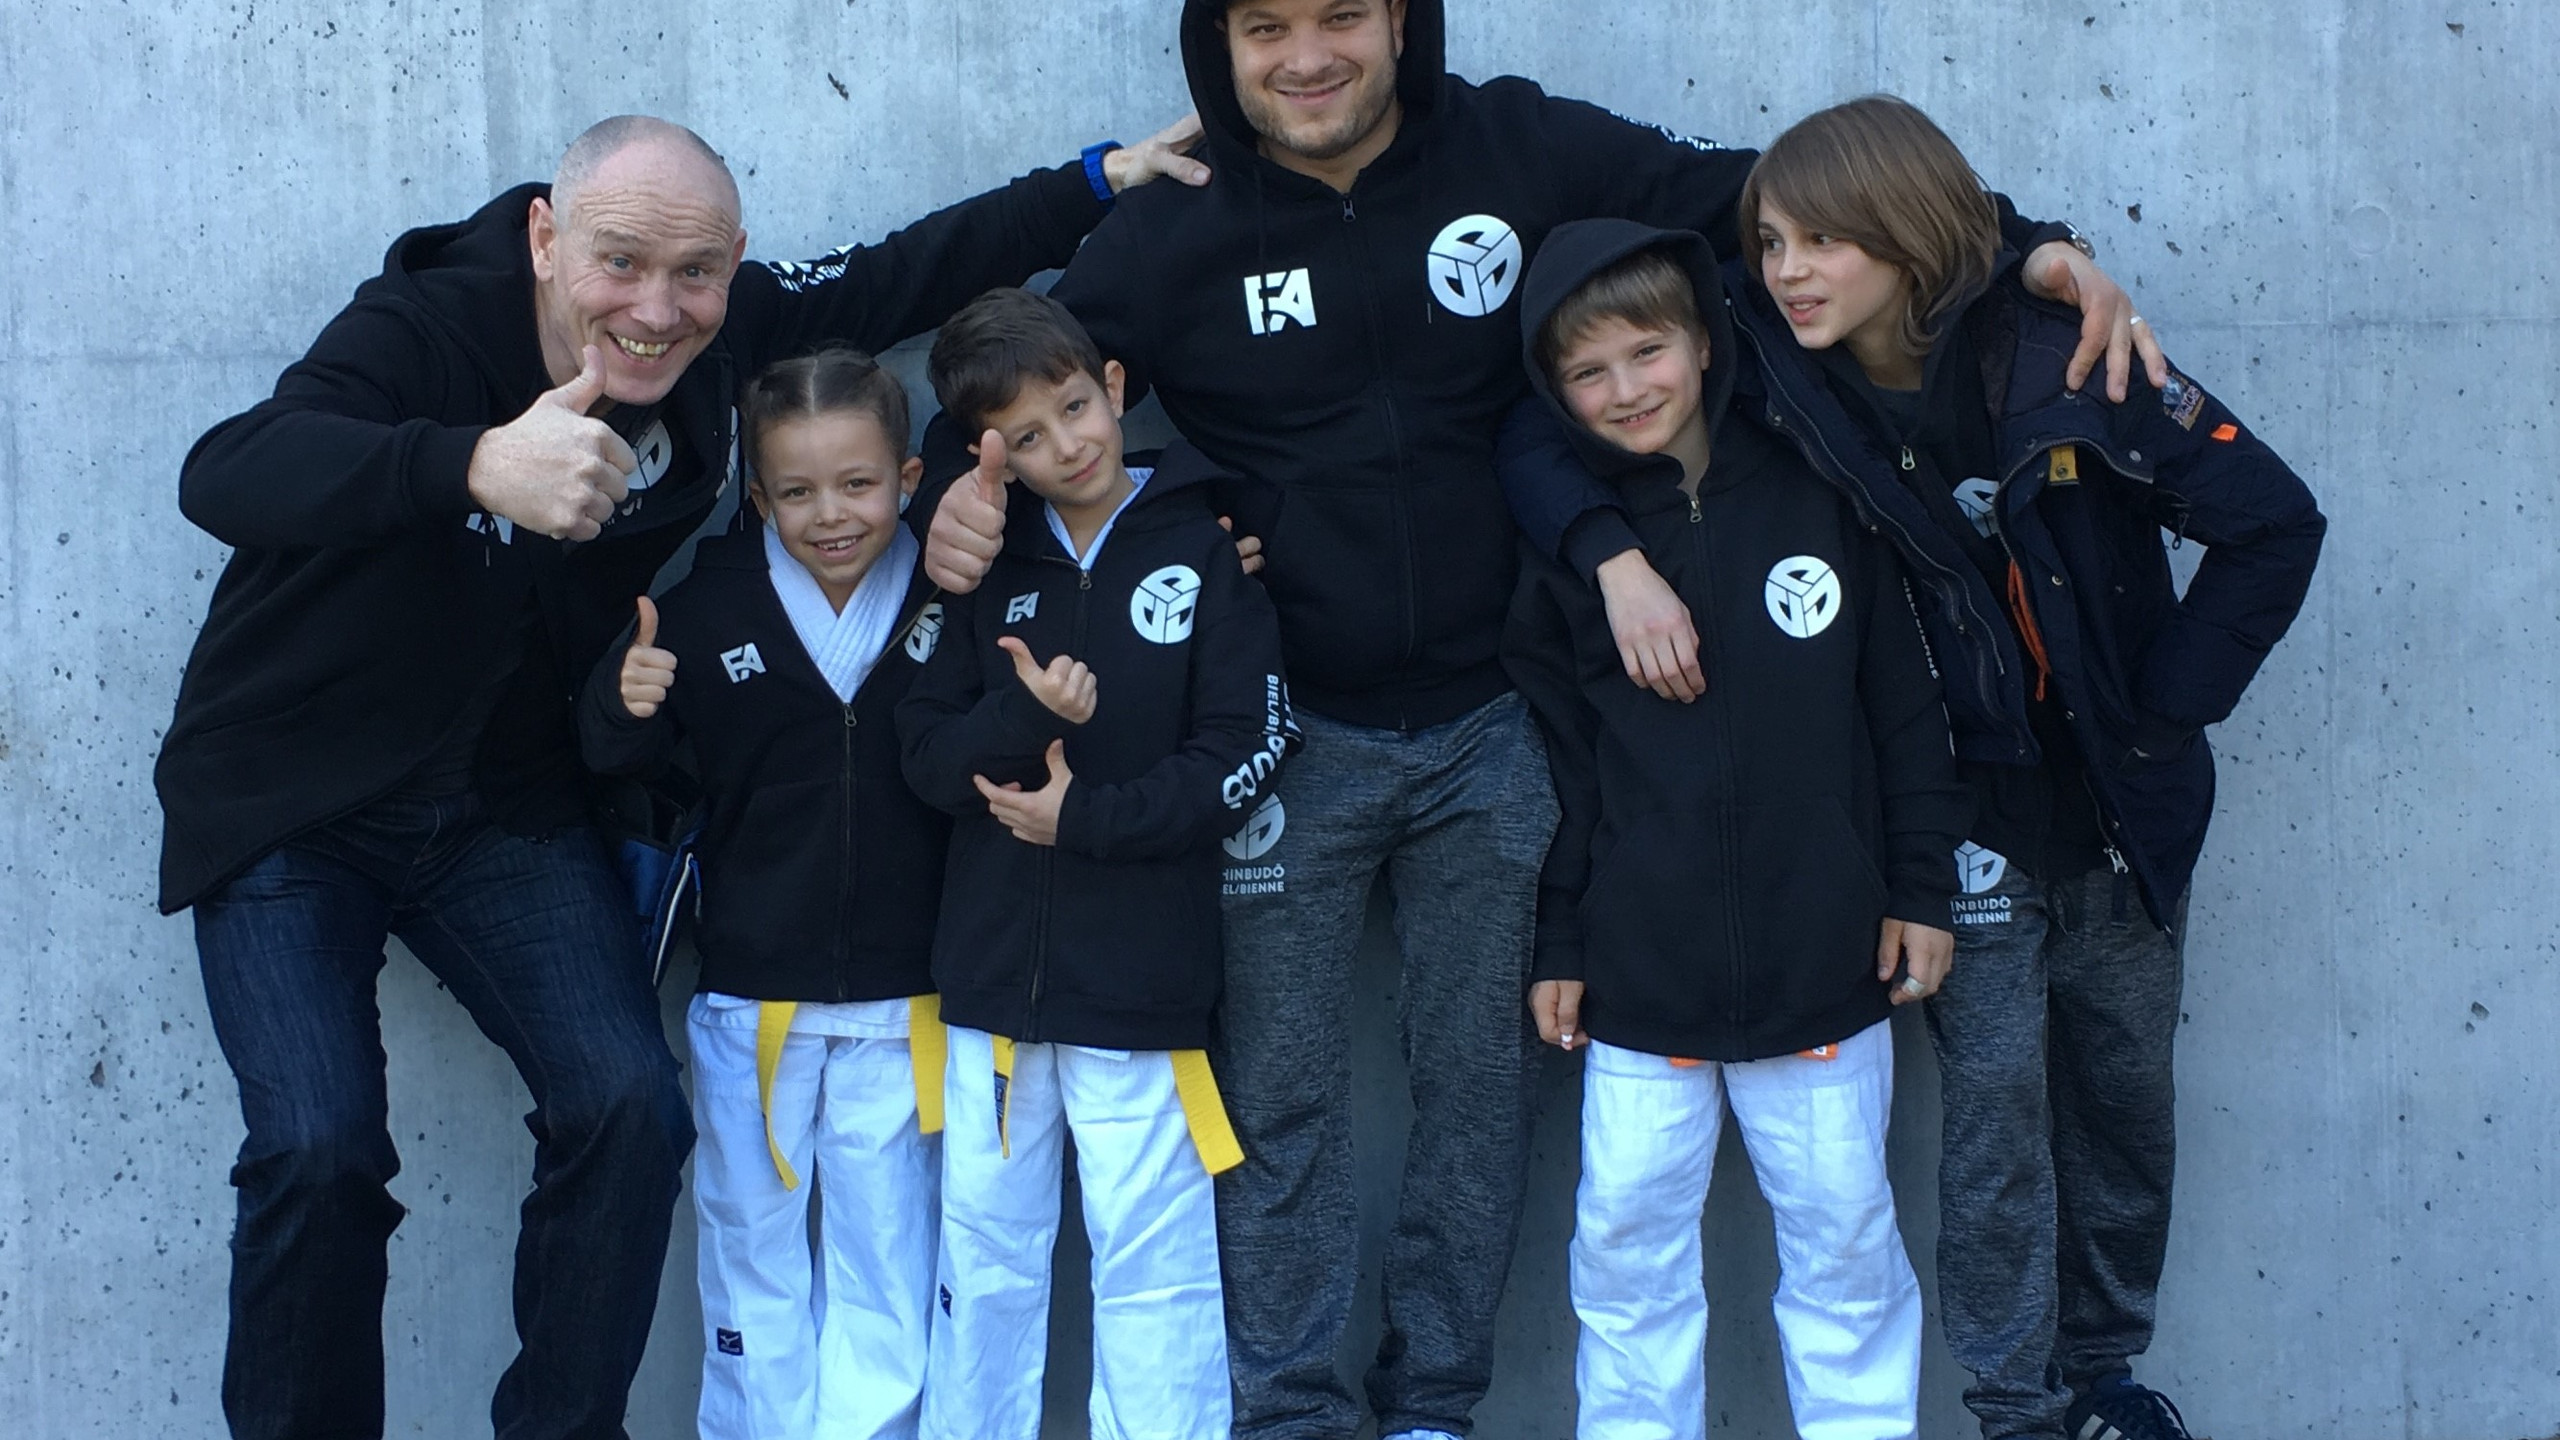 Oensingen Team Shinbudo